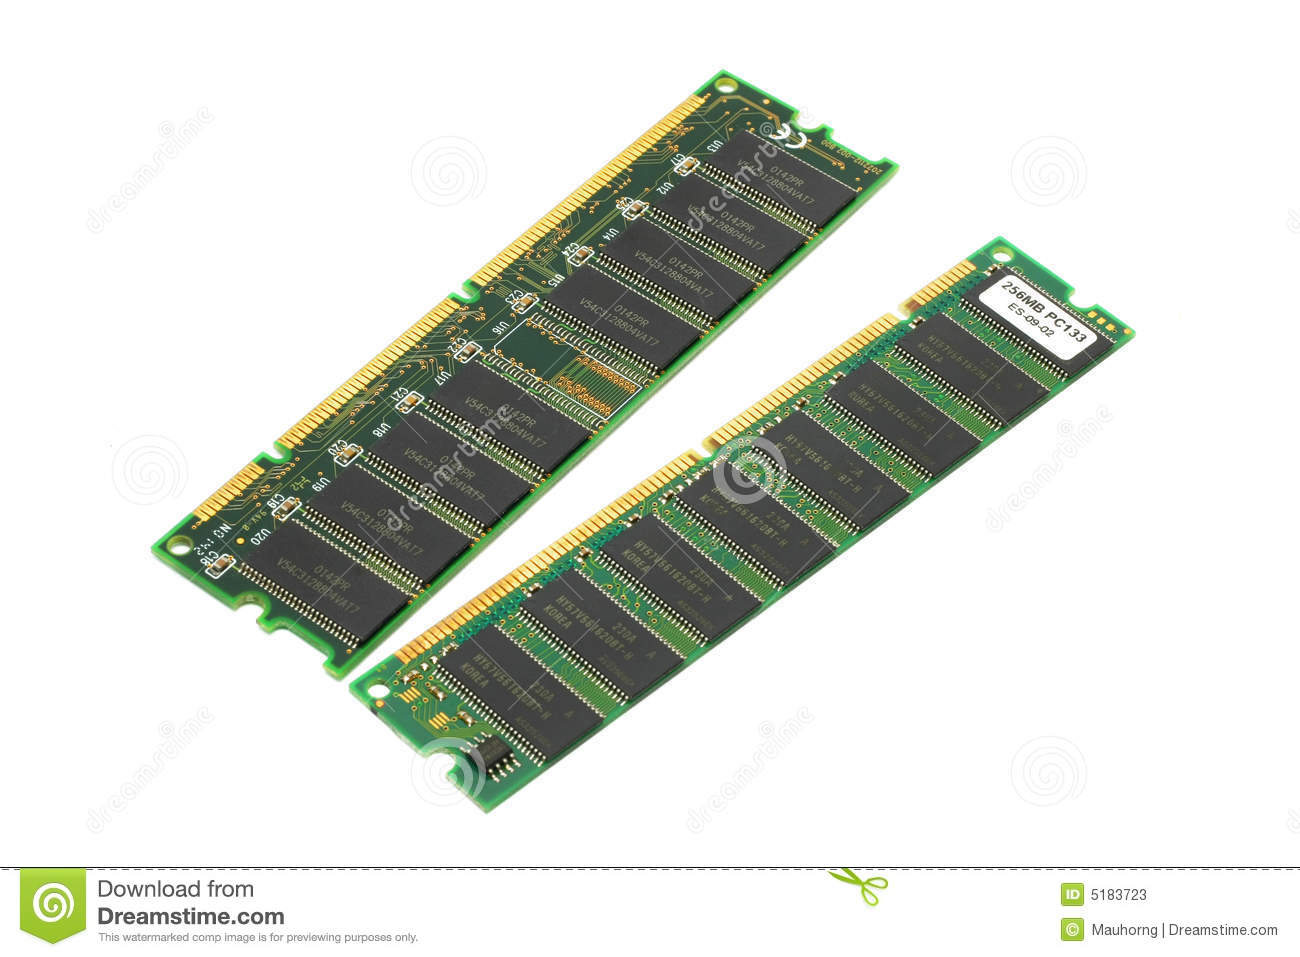 memory or random access memory ram computer science essay Resistive random-access memory (reram or rram) is a type of non-volatile (nv) random-access (ram) computer memory that works by changing the resistance across a dielectric solid-state material, often referred to as a memristor.